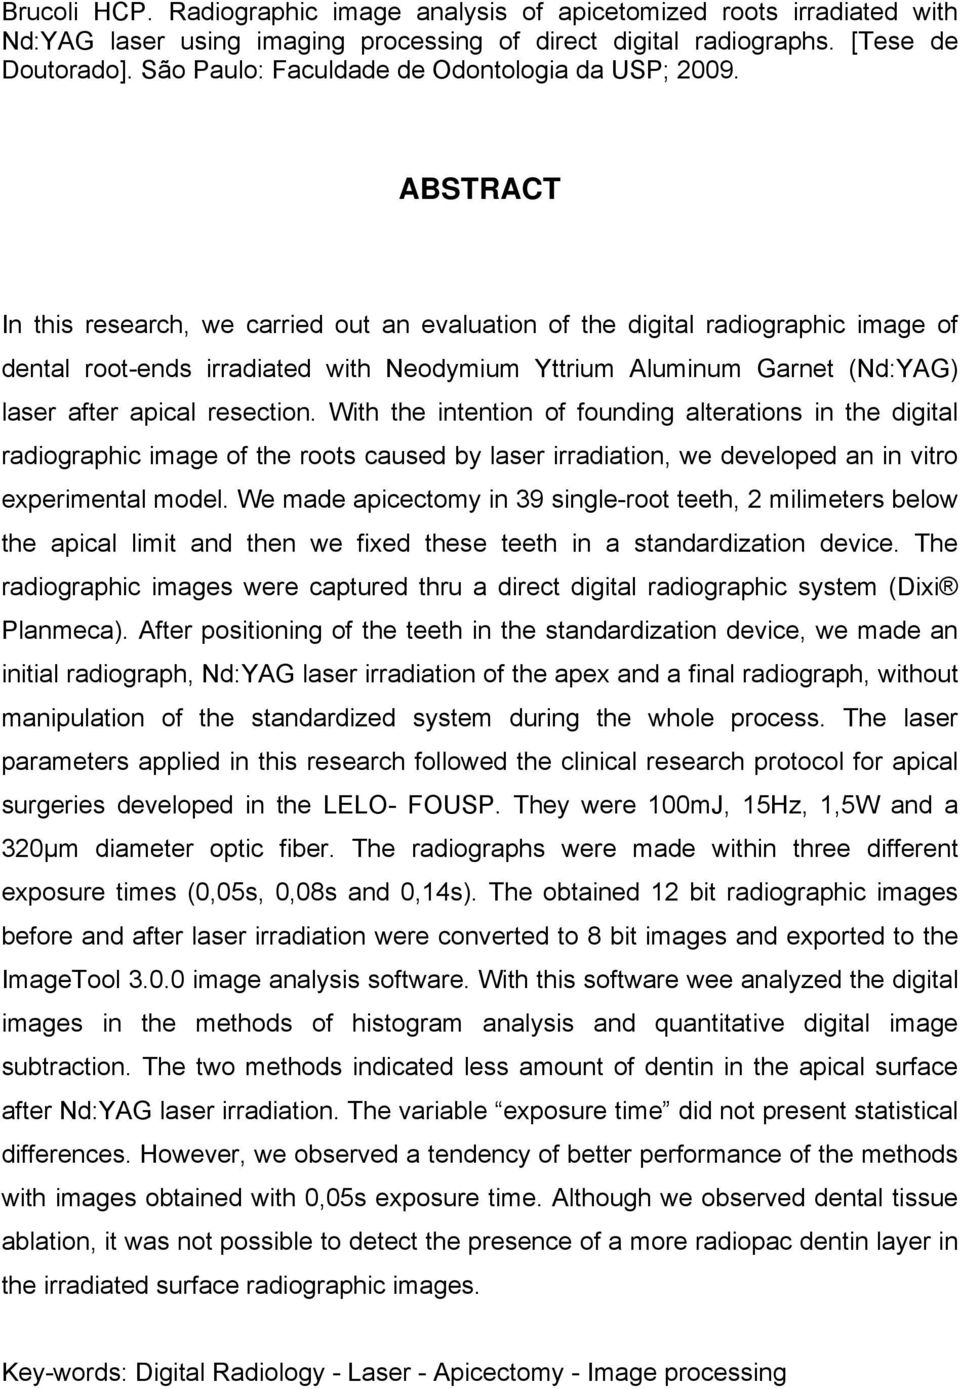 ABSTRACT In this research, we carried out an evaluation of the digital radiographic image of dental root-ends irradiated with Neodymium Yttrium Aluminum Garnet (Nd:YAG) laser after apical resection.